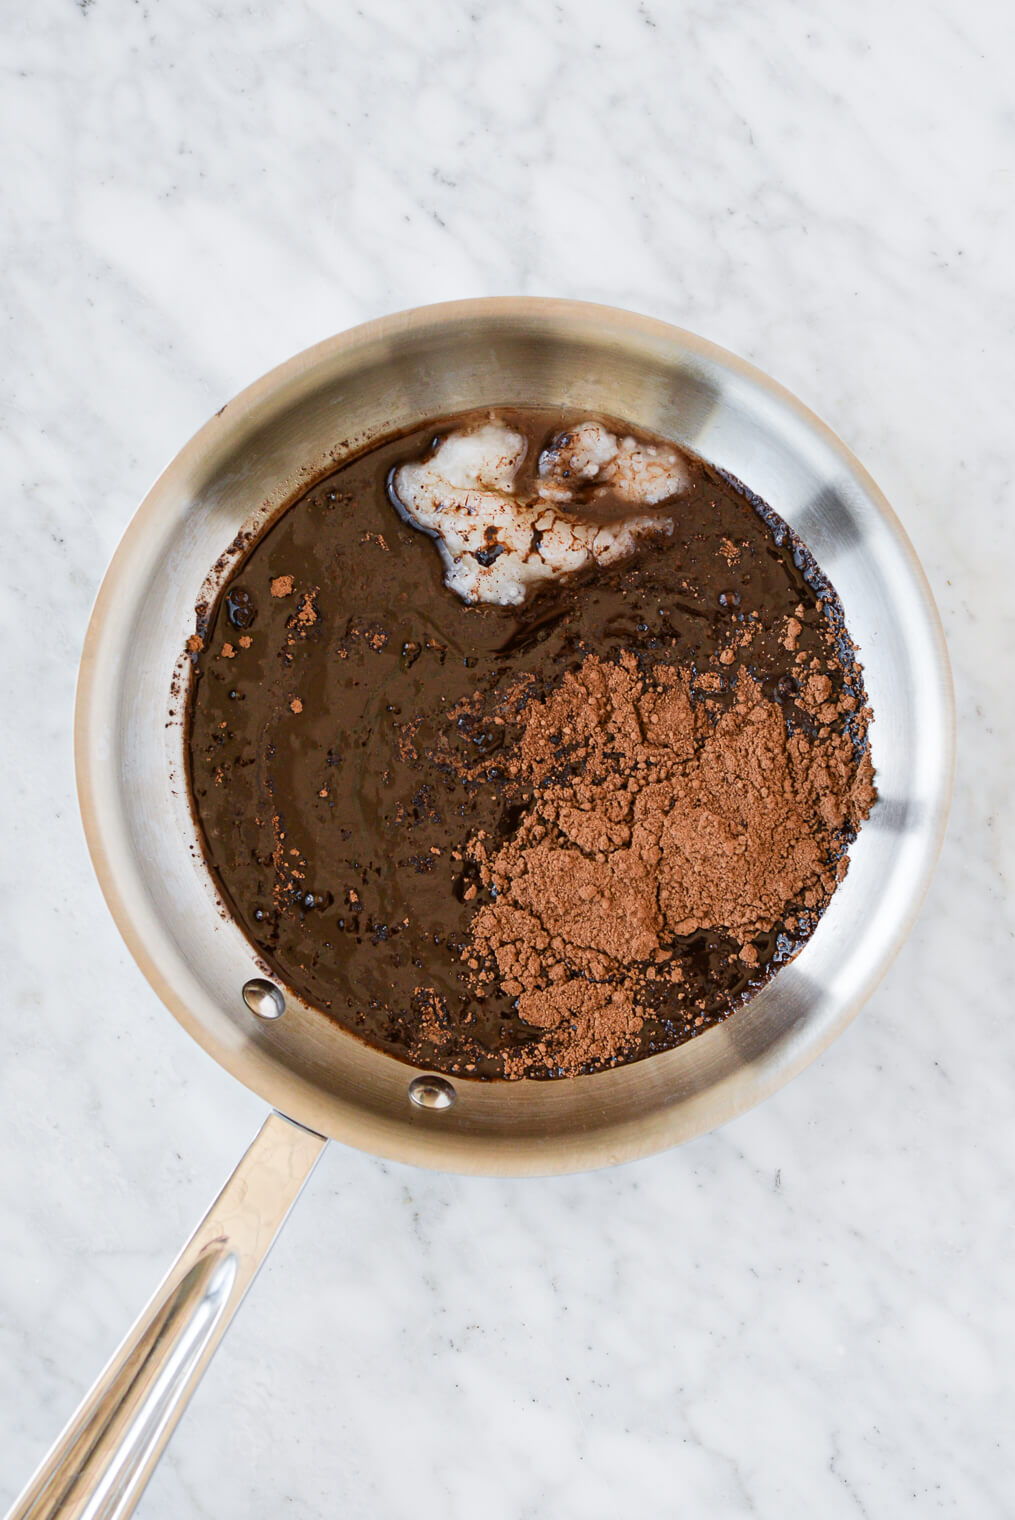 maple syrup, coconut oil, cocoa powder, and vanilla extract unmixed in a stainless steel pot sitting on a marble surface